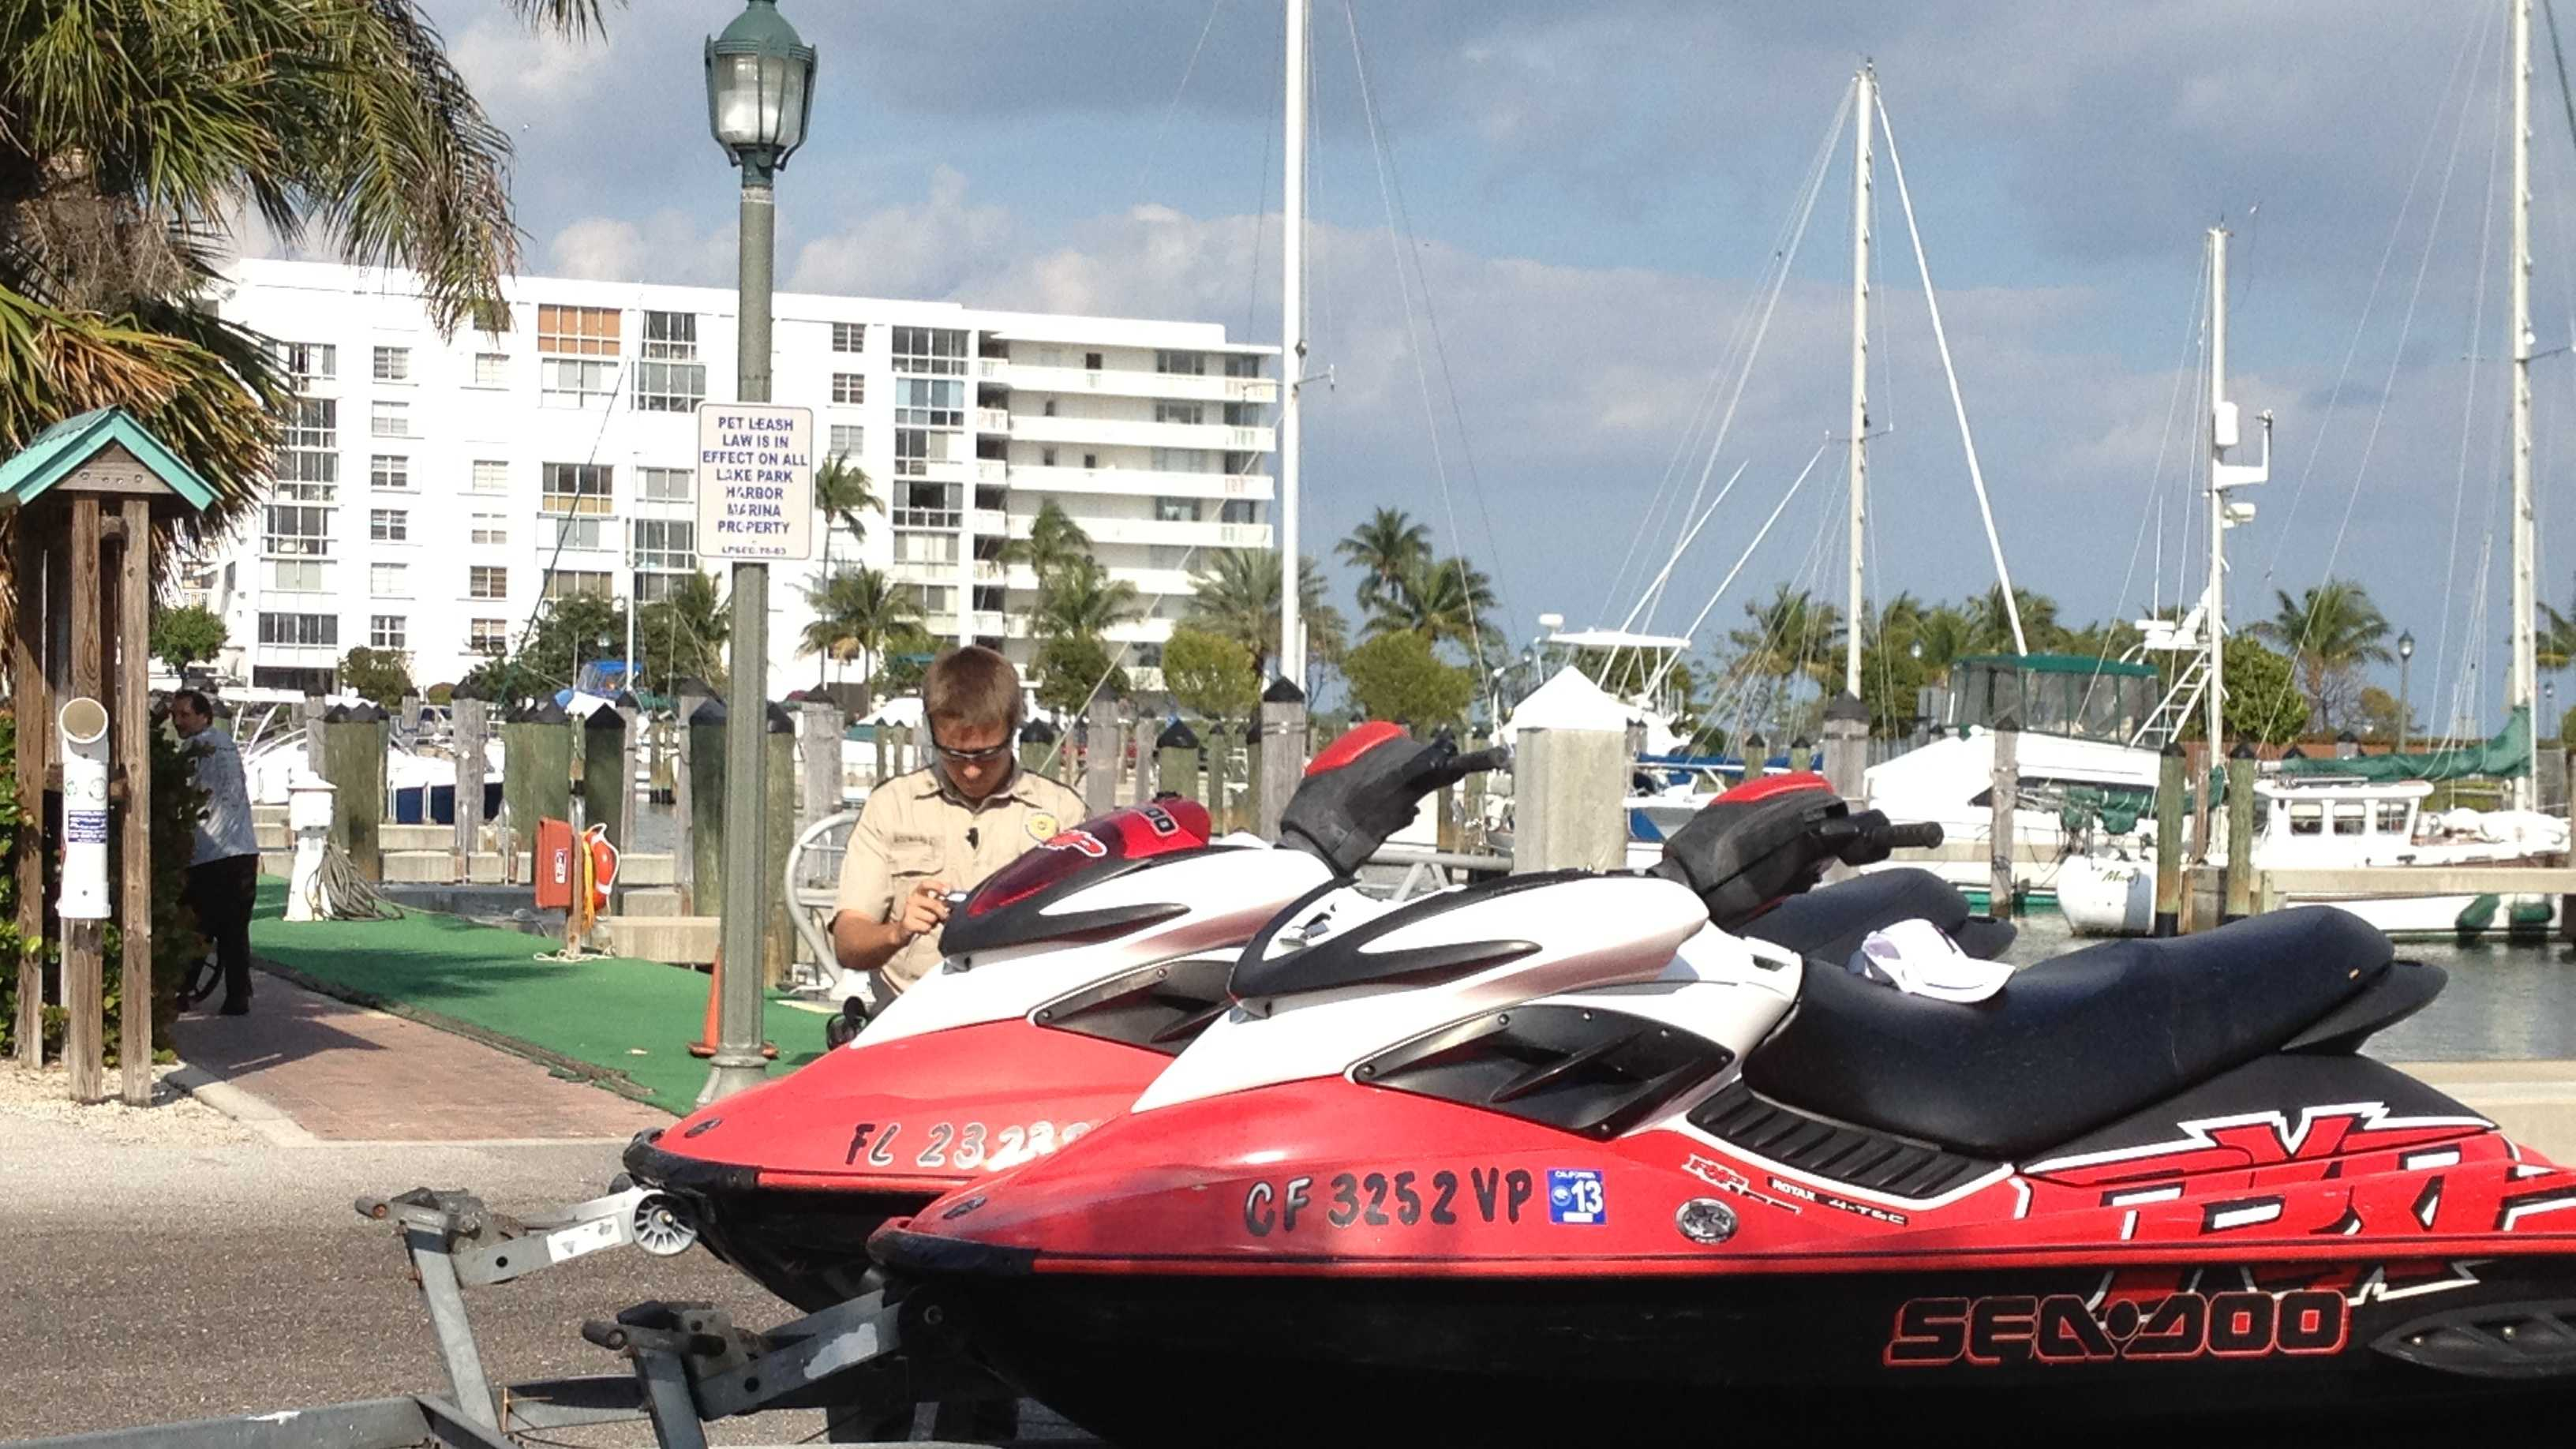 A teenager was taken to St. Mary's Medical Center after a Sea Doo accident.